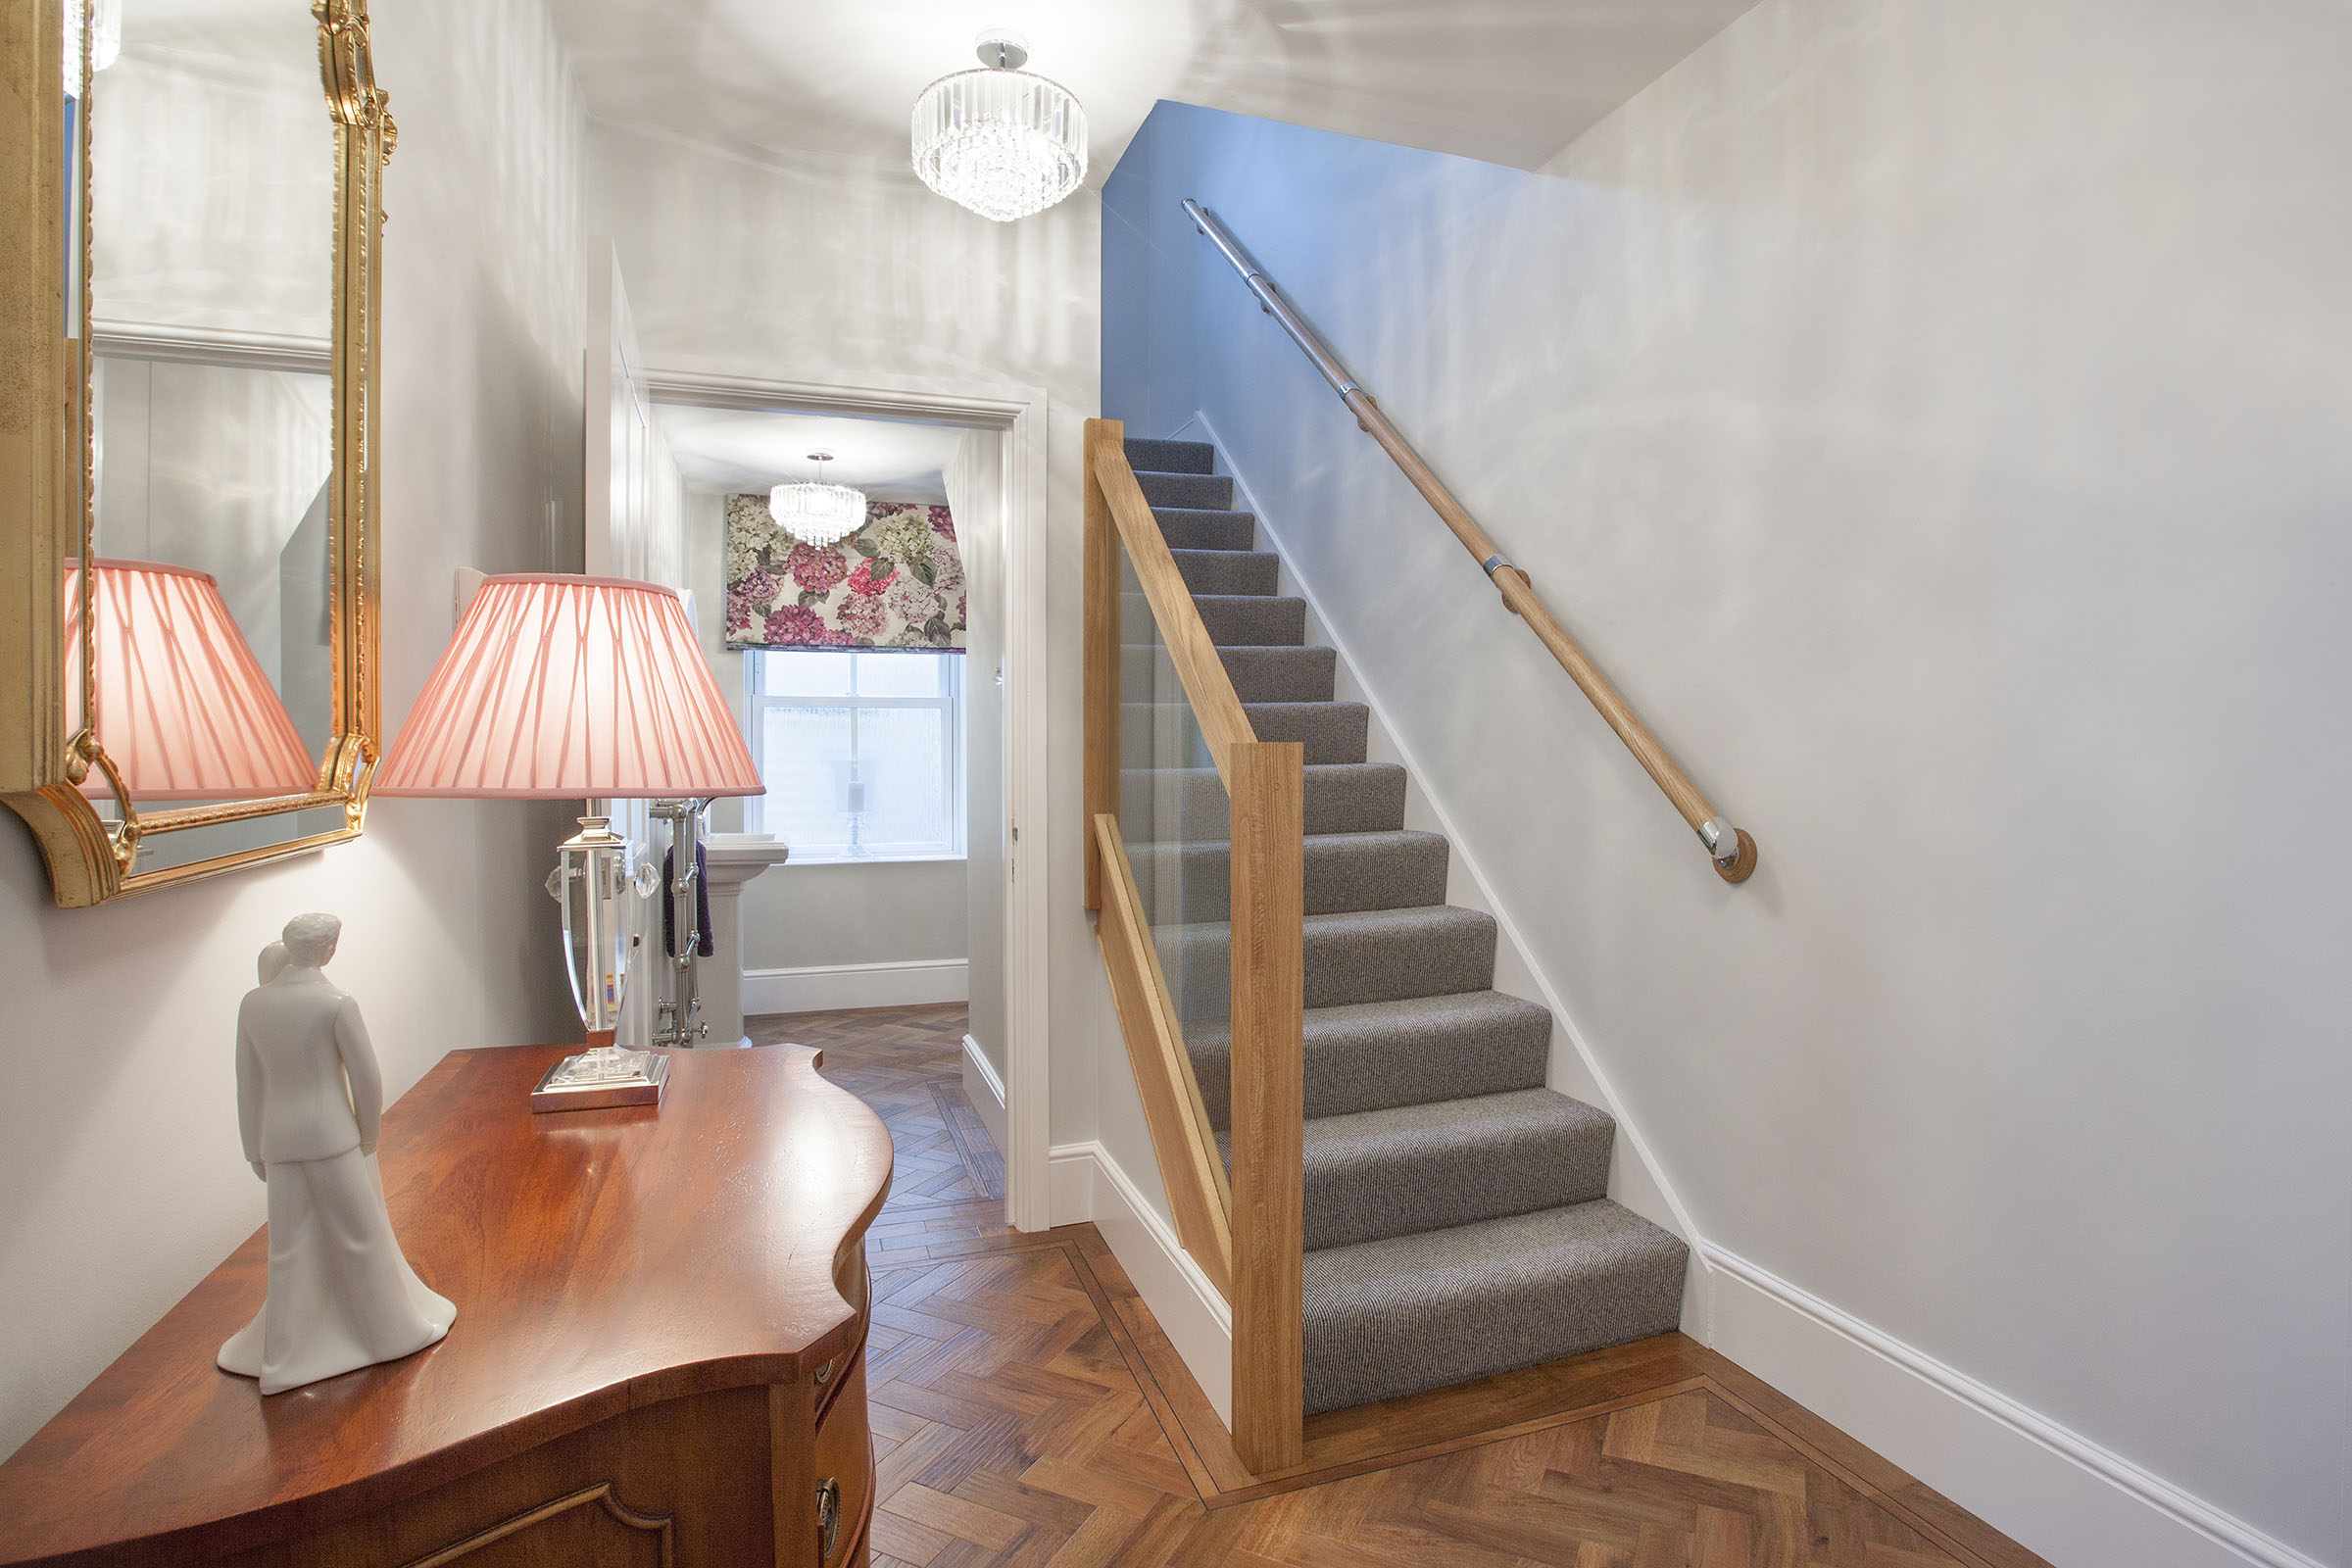 Hall with wooden floor, contemporary grey stair carpet, wood and glass ballustrade, Roman blind.